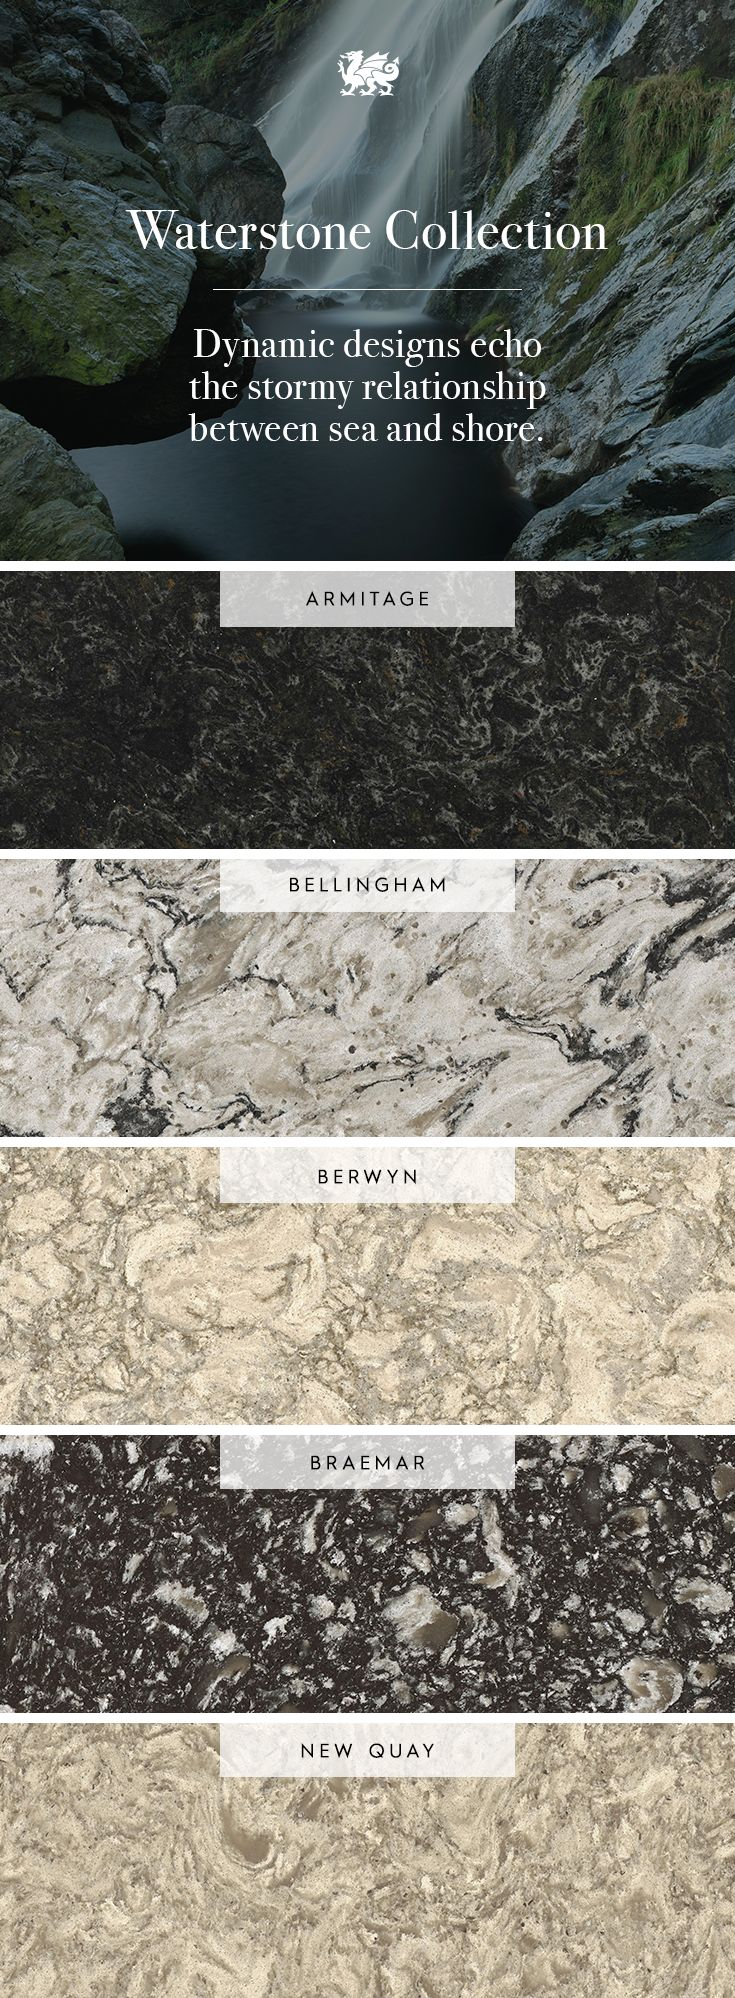 Lapidus premium product search marva marble and granite - Bring Home The Churning Energy Of Our Waterstone Collection During Your Next Renovation